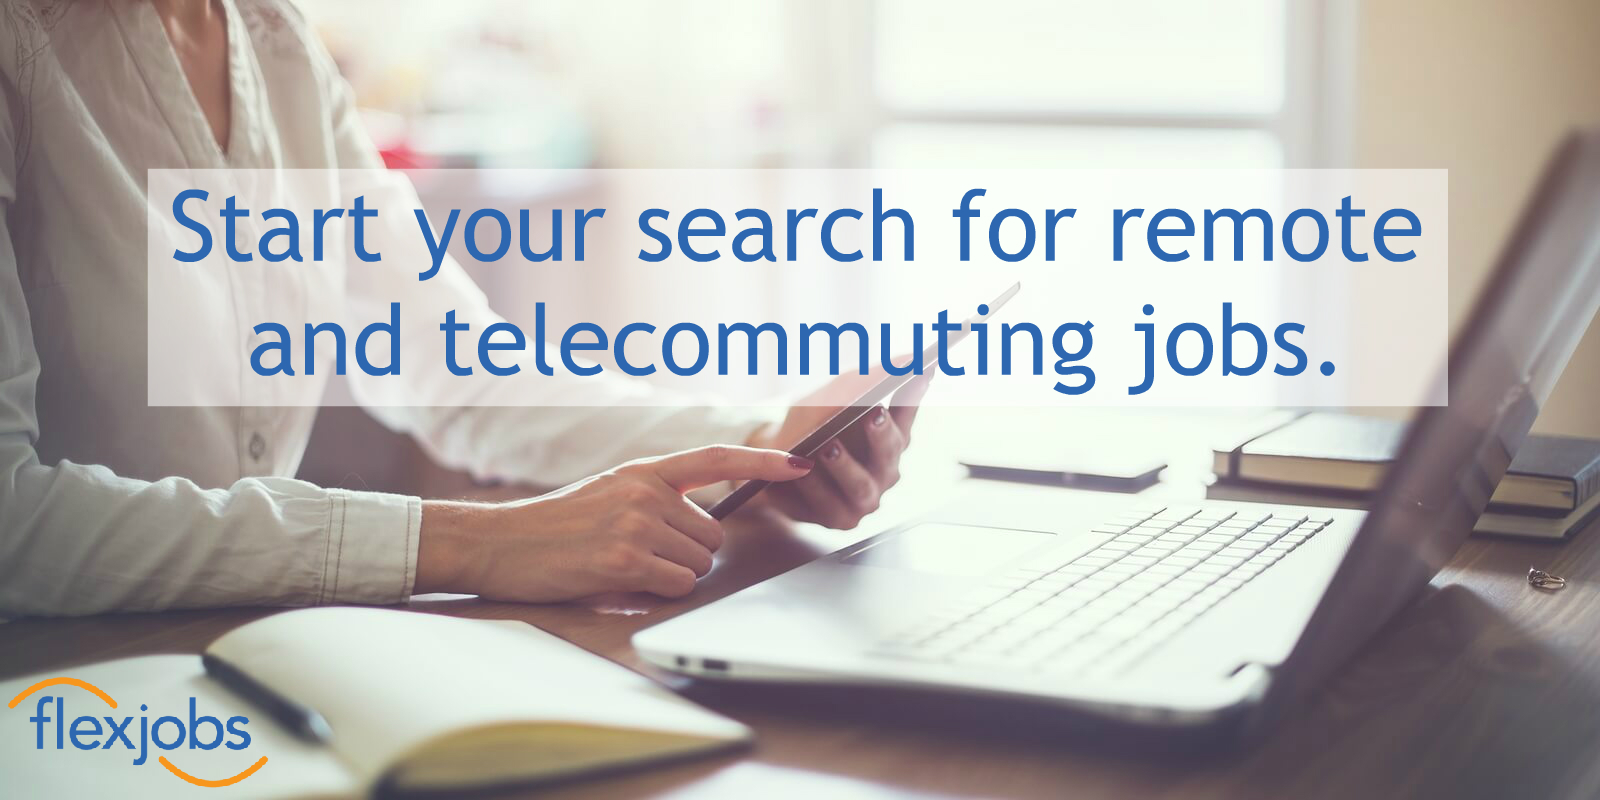 CTA start your search for remote and telecommuting jobs